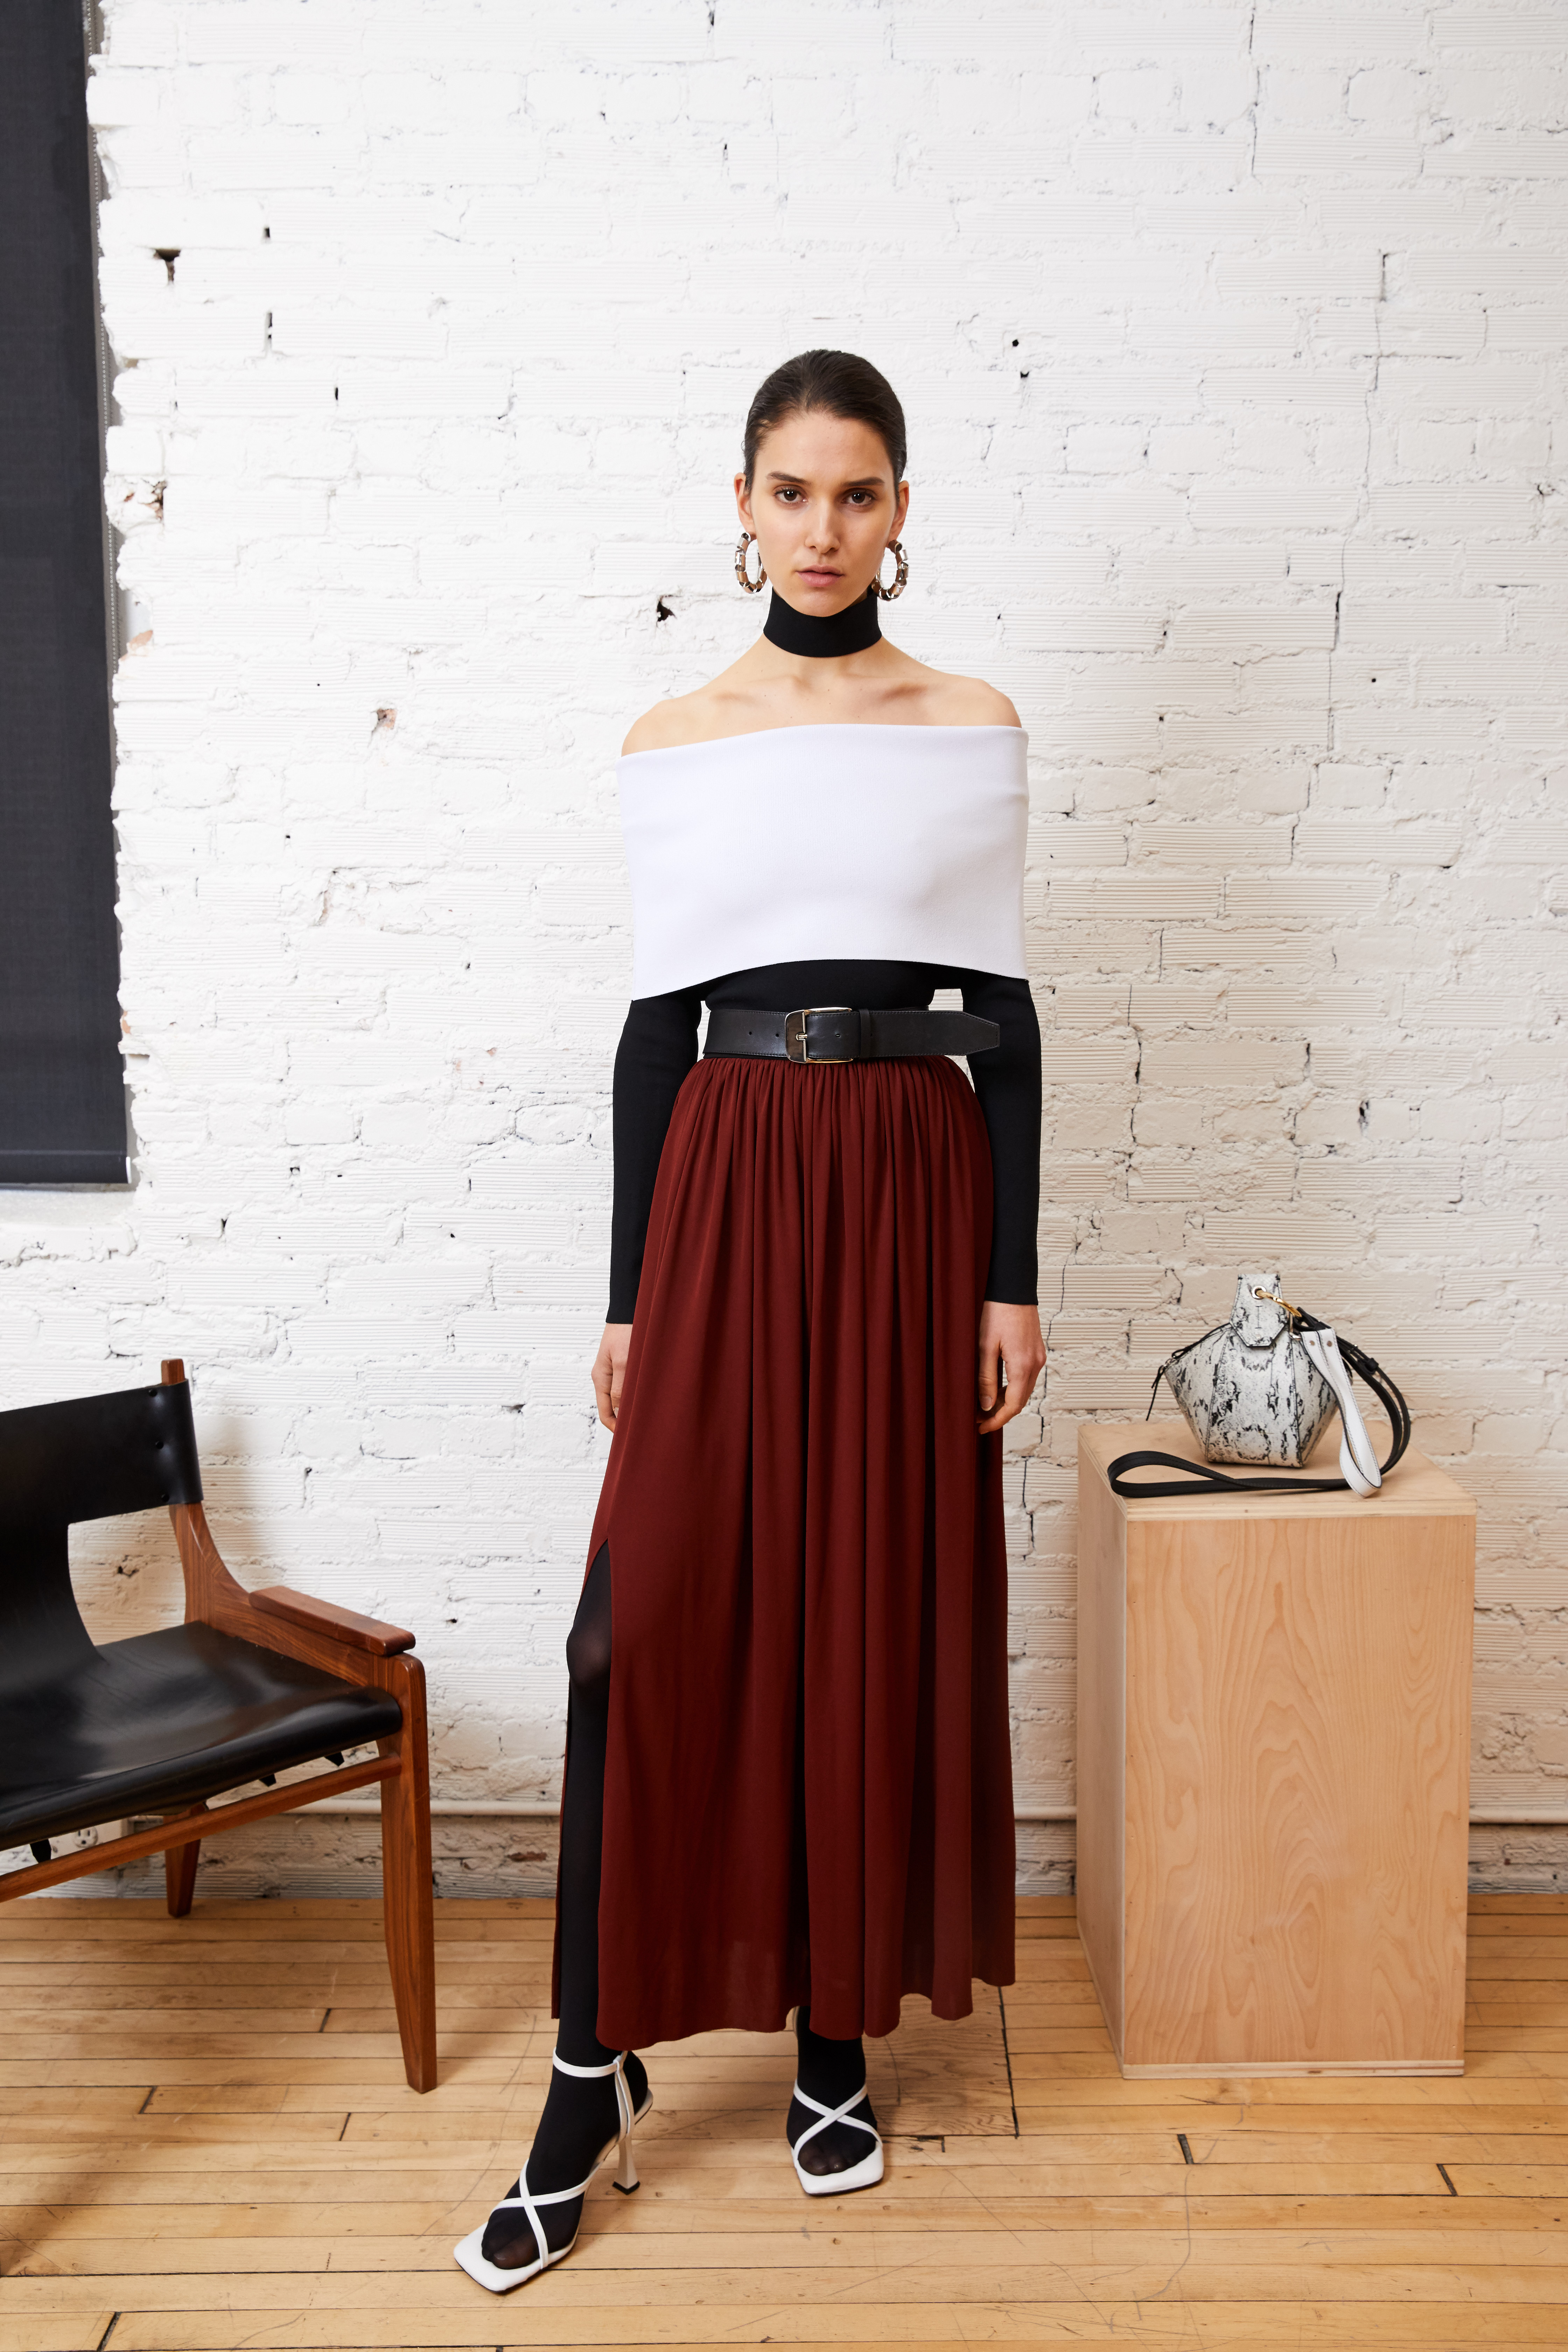 For pre-fall, bold and languid strokes combine in a textured knit top and jersey skirt.